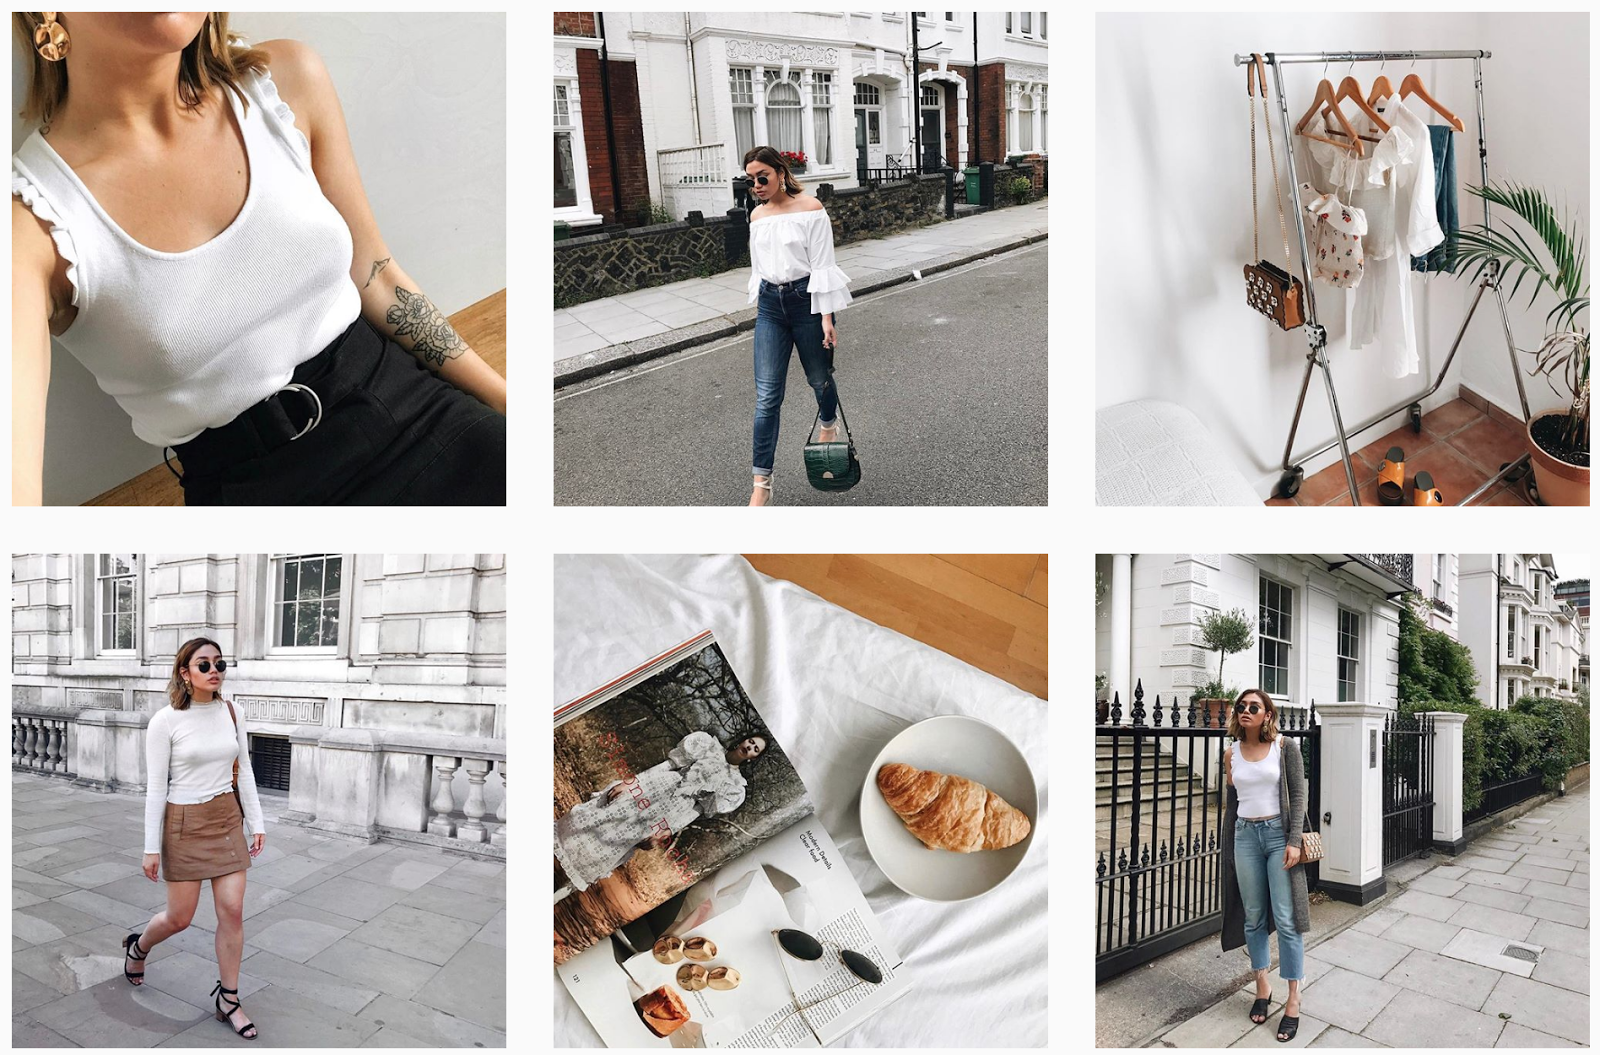 5 Micro-Influencers To Check Out On Instagram